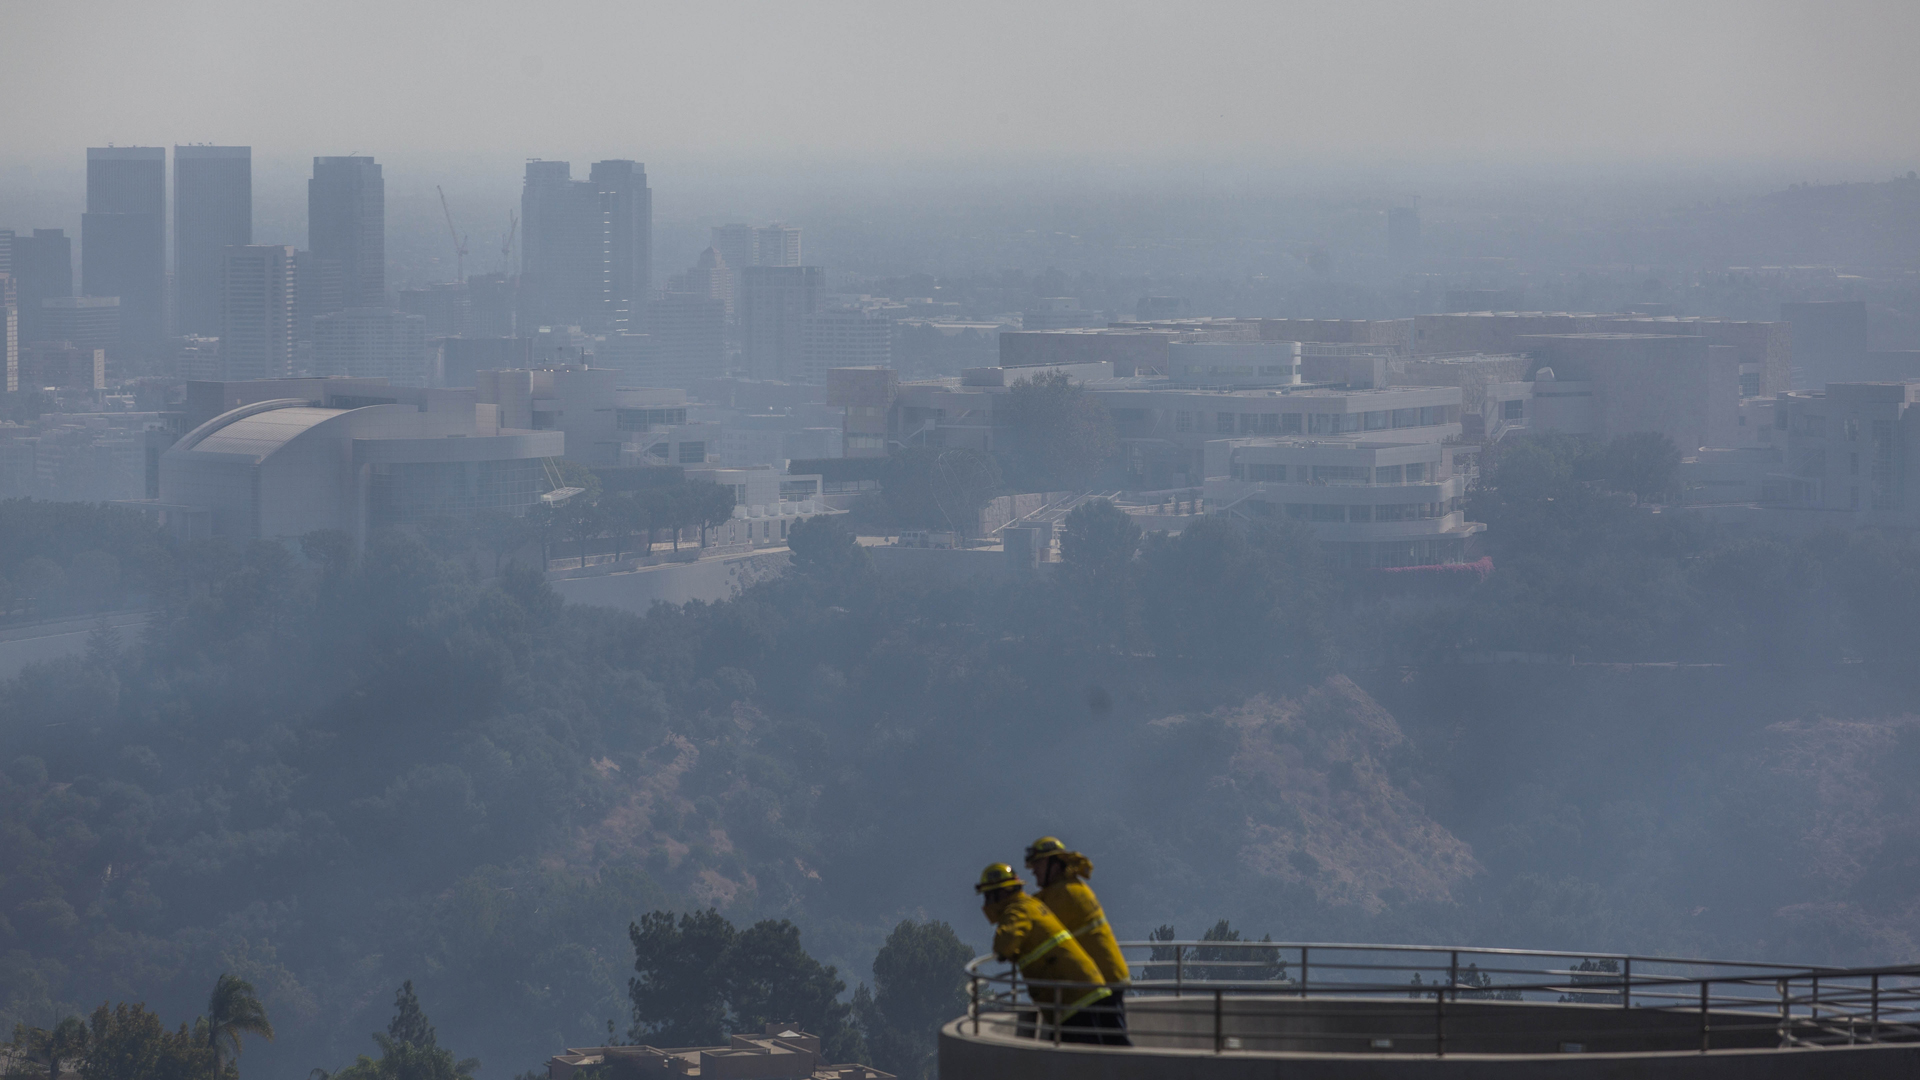 Firefighters stand on a balcony overlooking the Getty Center as the Getty Fire burns in Brentwood on Oct. 28, 2019. (Credit: Apu Gomes / AFP / Getty Images)